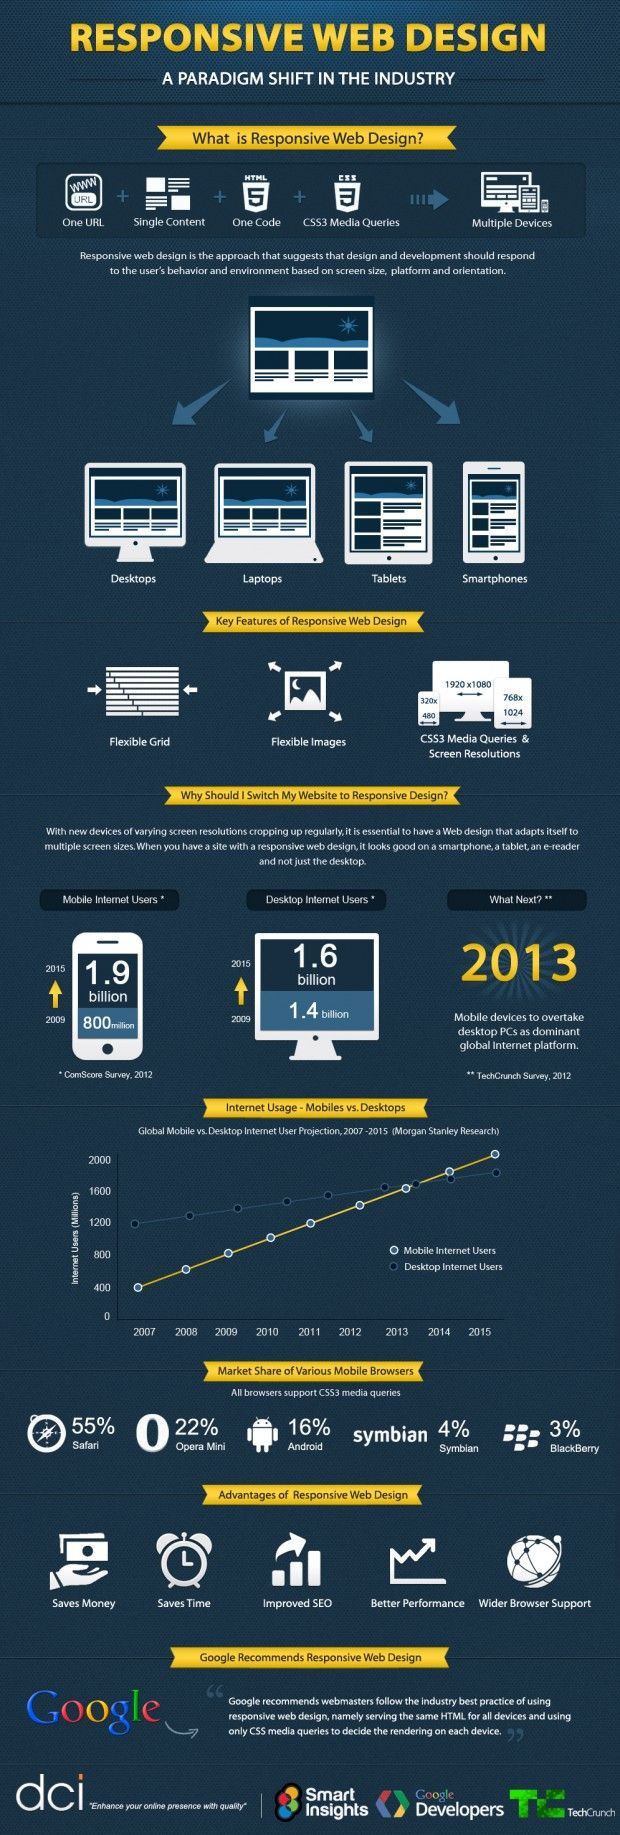 #Responsive #Web #Design: A Paradigm Shift in the Industry [Infographic]…